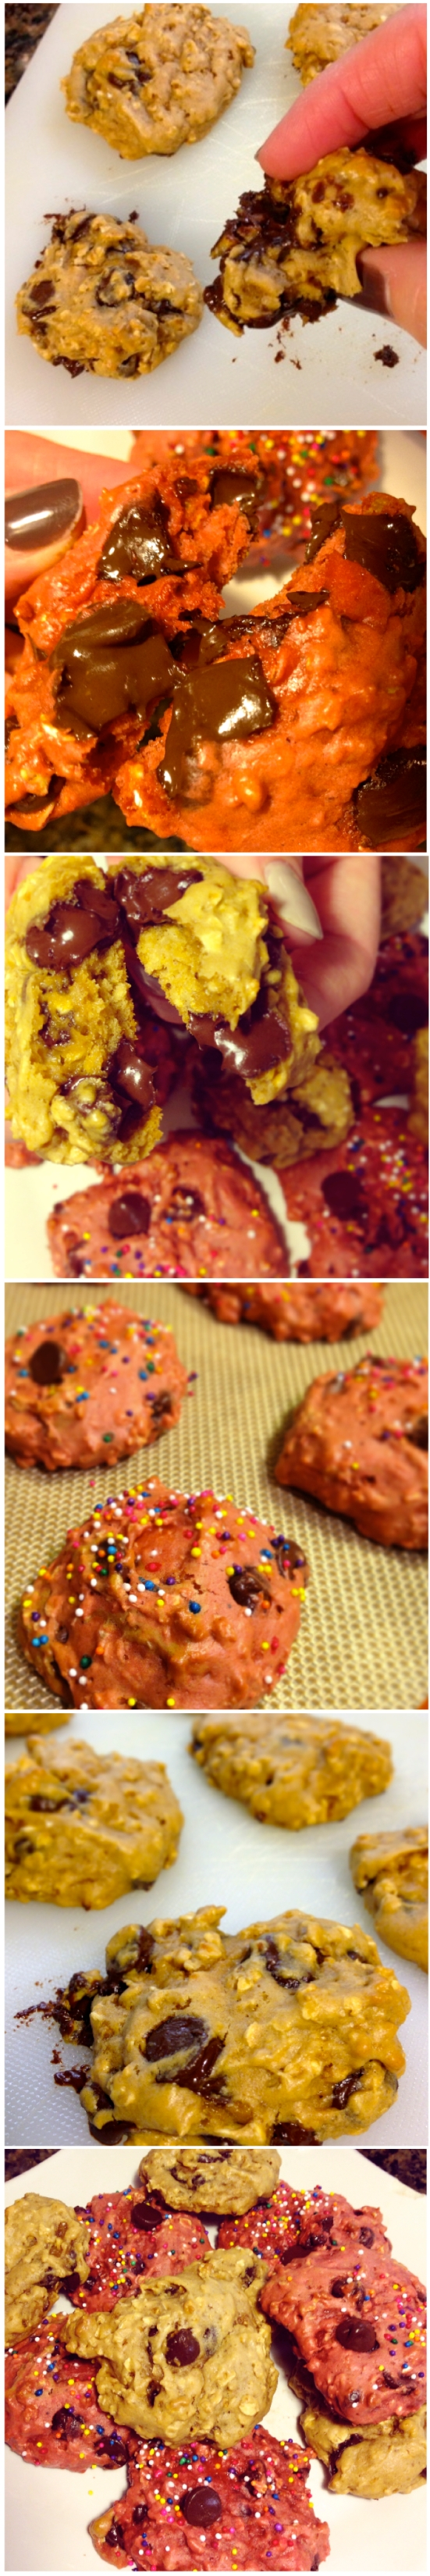 Hearty & Healthy Cookies ::Your body will thank you!